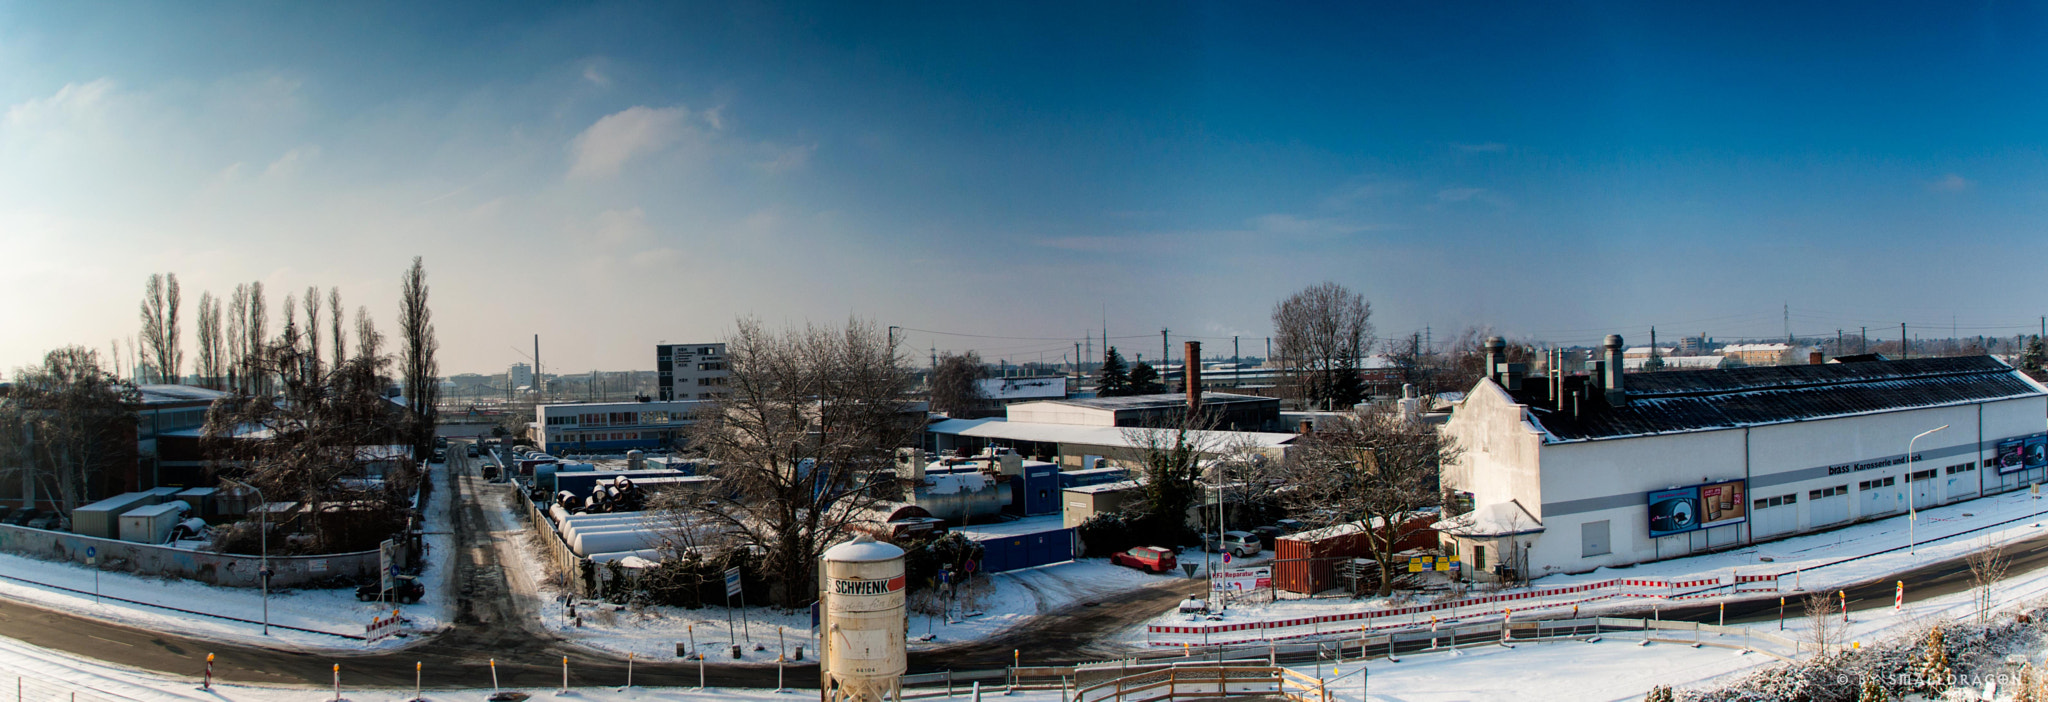 Photograph Morning Panorama by Sven Reitis on 500px